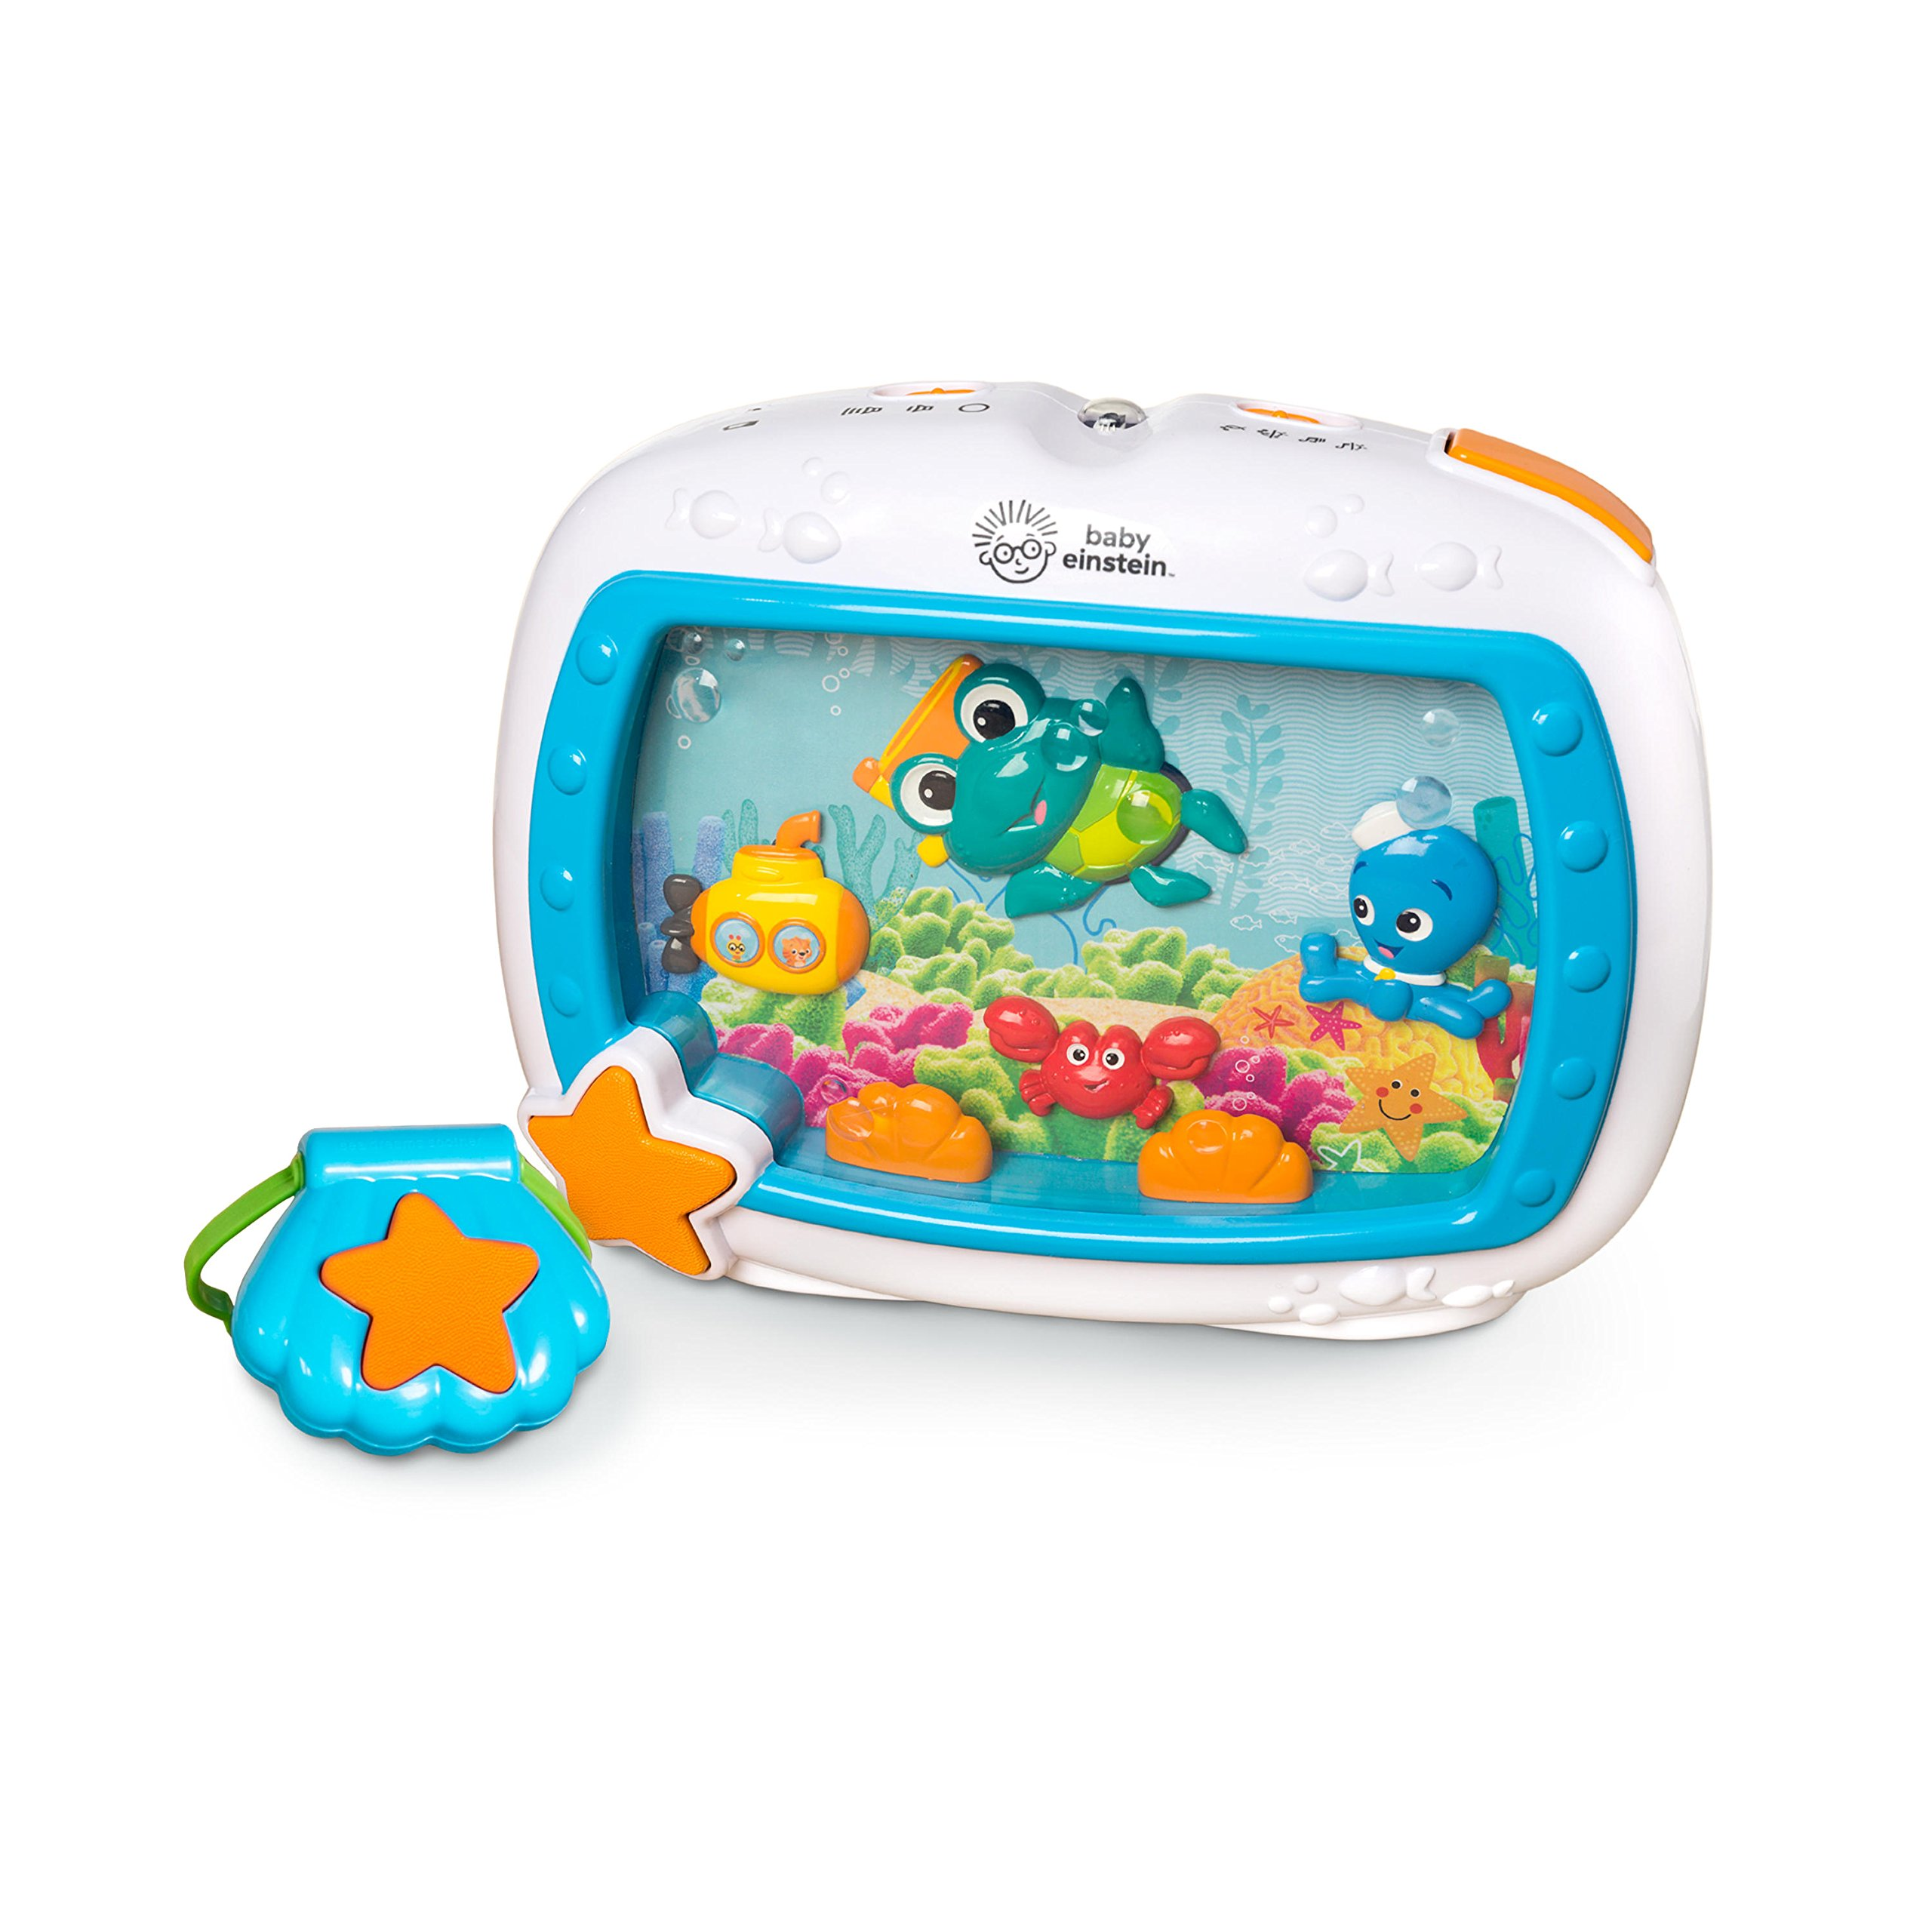 Baby Einstein Sea Dreams Soother Crib Toy with Remote, Lights and Melodies for Newborns and up by Baby Einstein